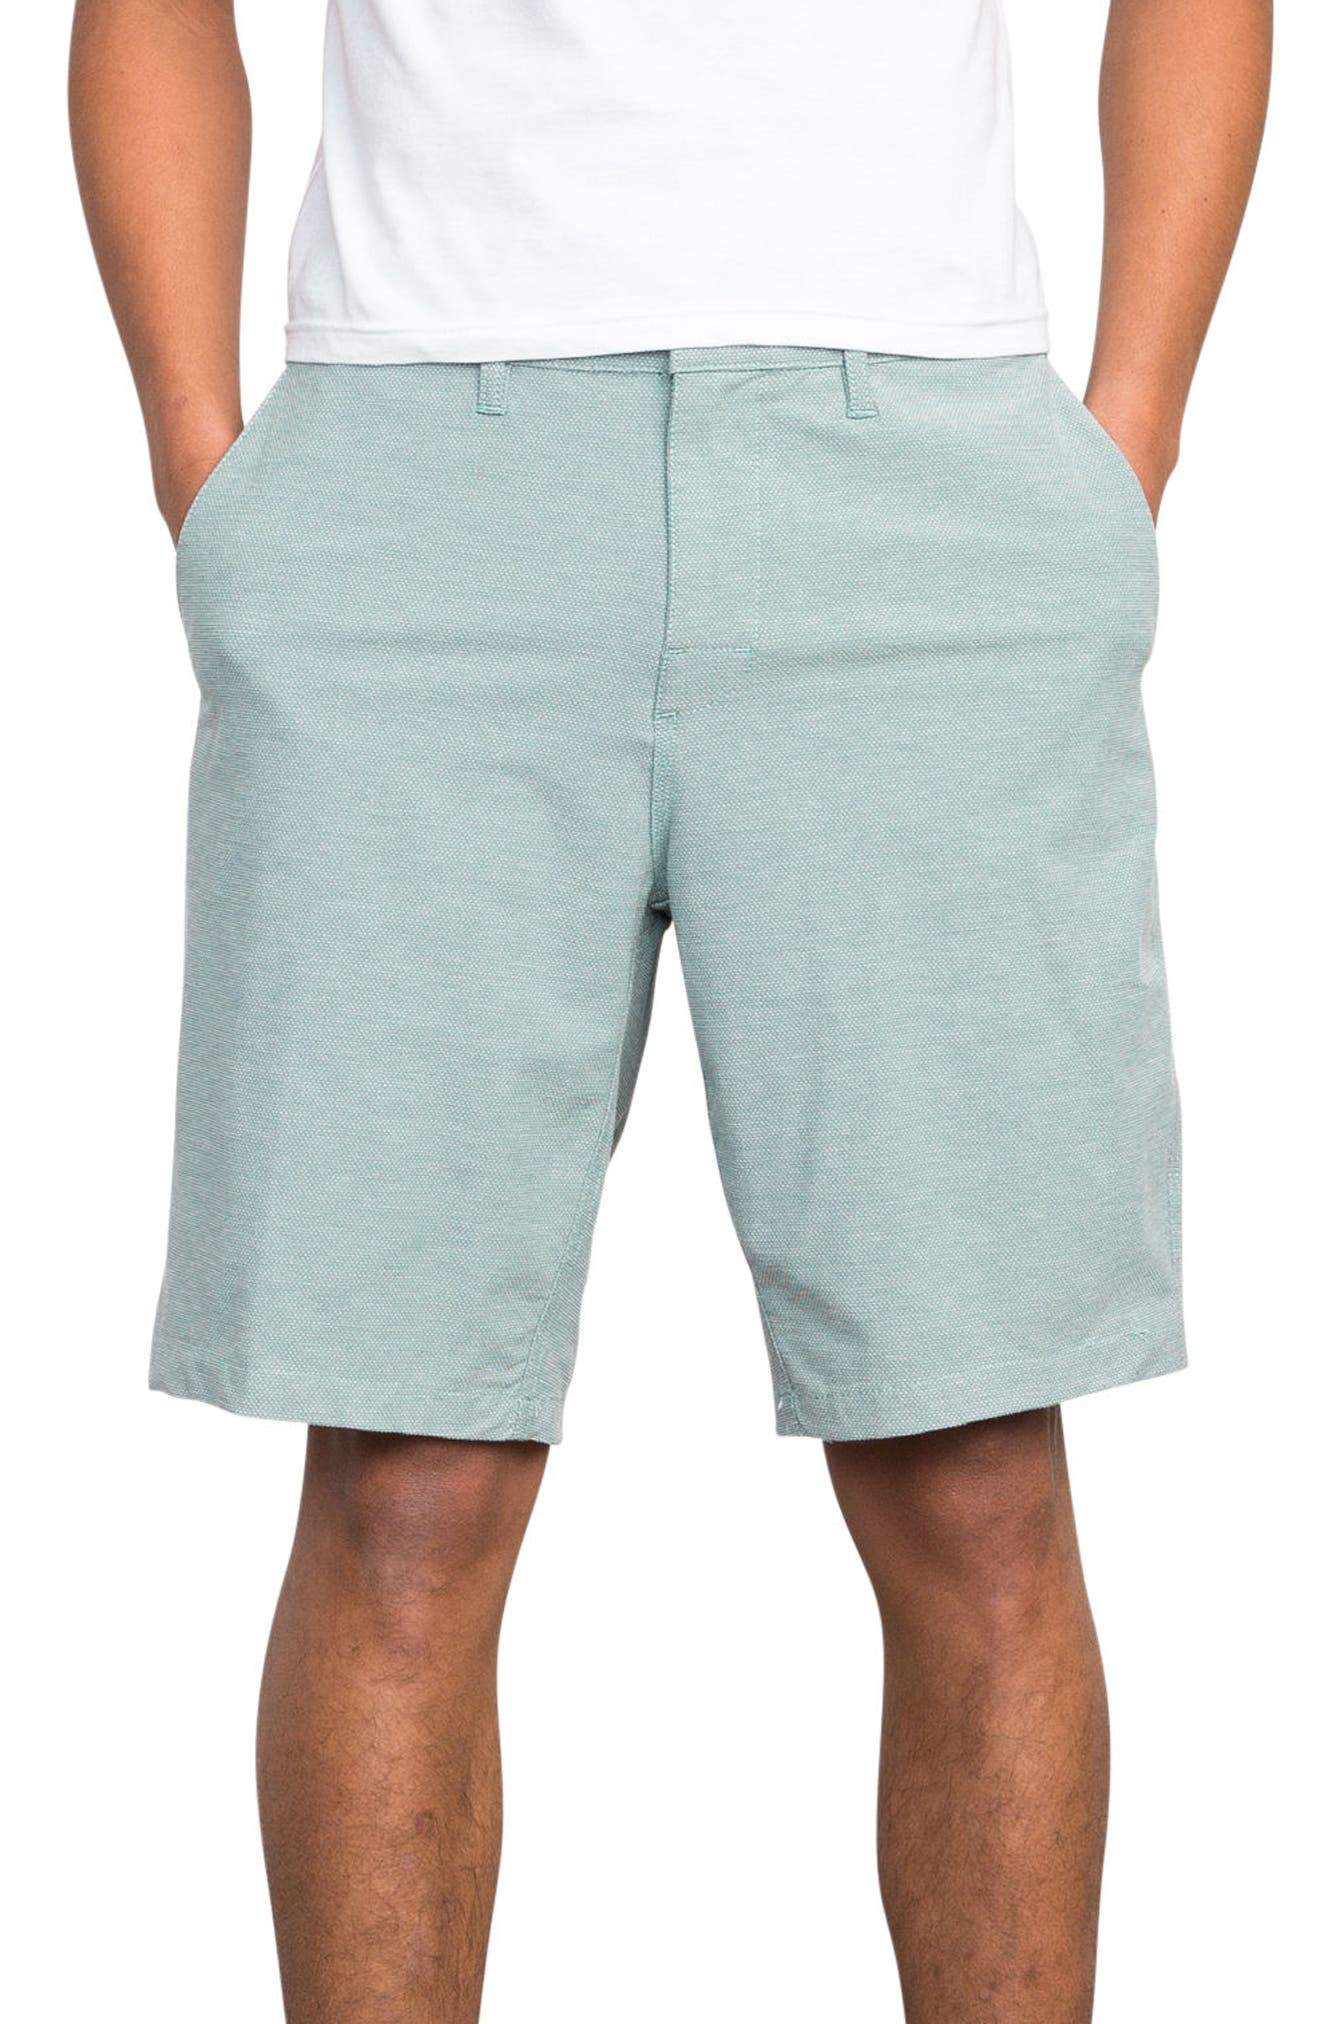 Holidaze Hybrid Shorts,                             Main thumbnail 1, color,                             PINE TREE